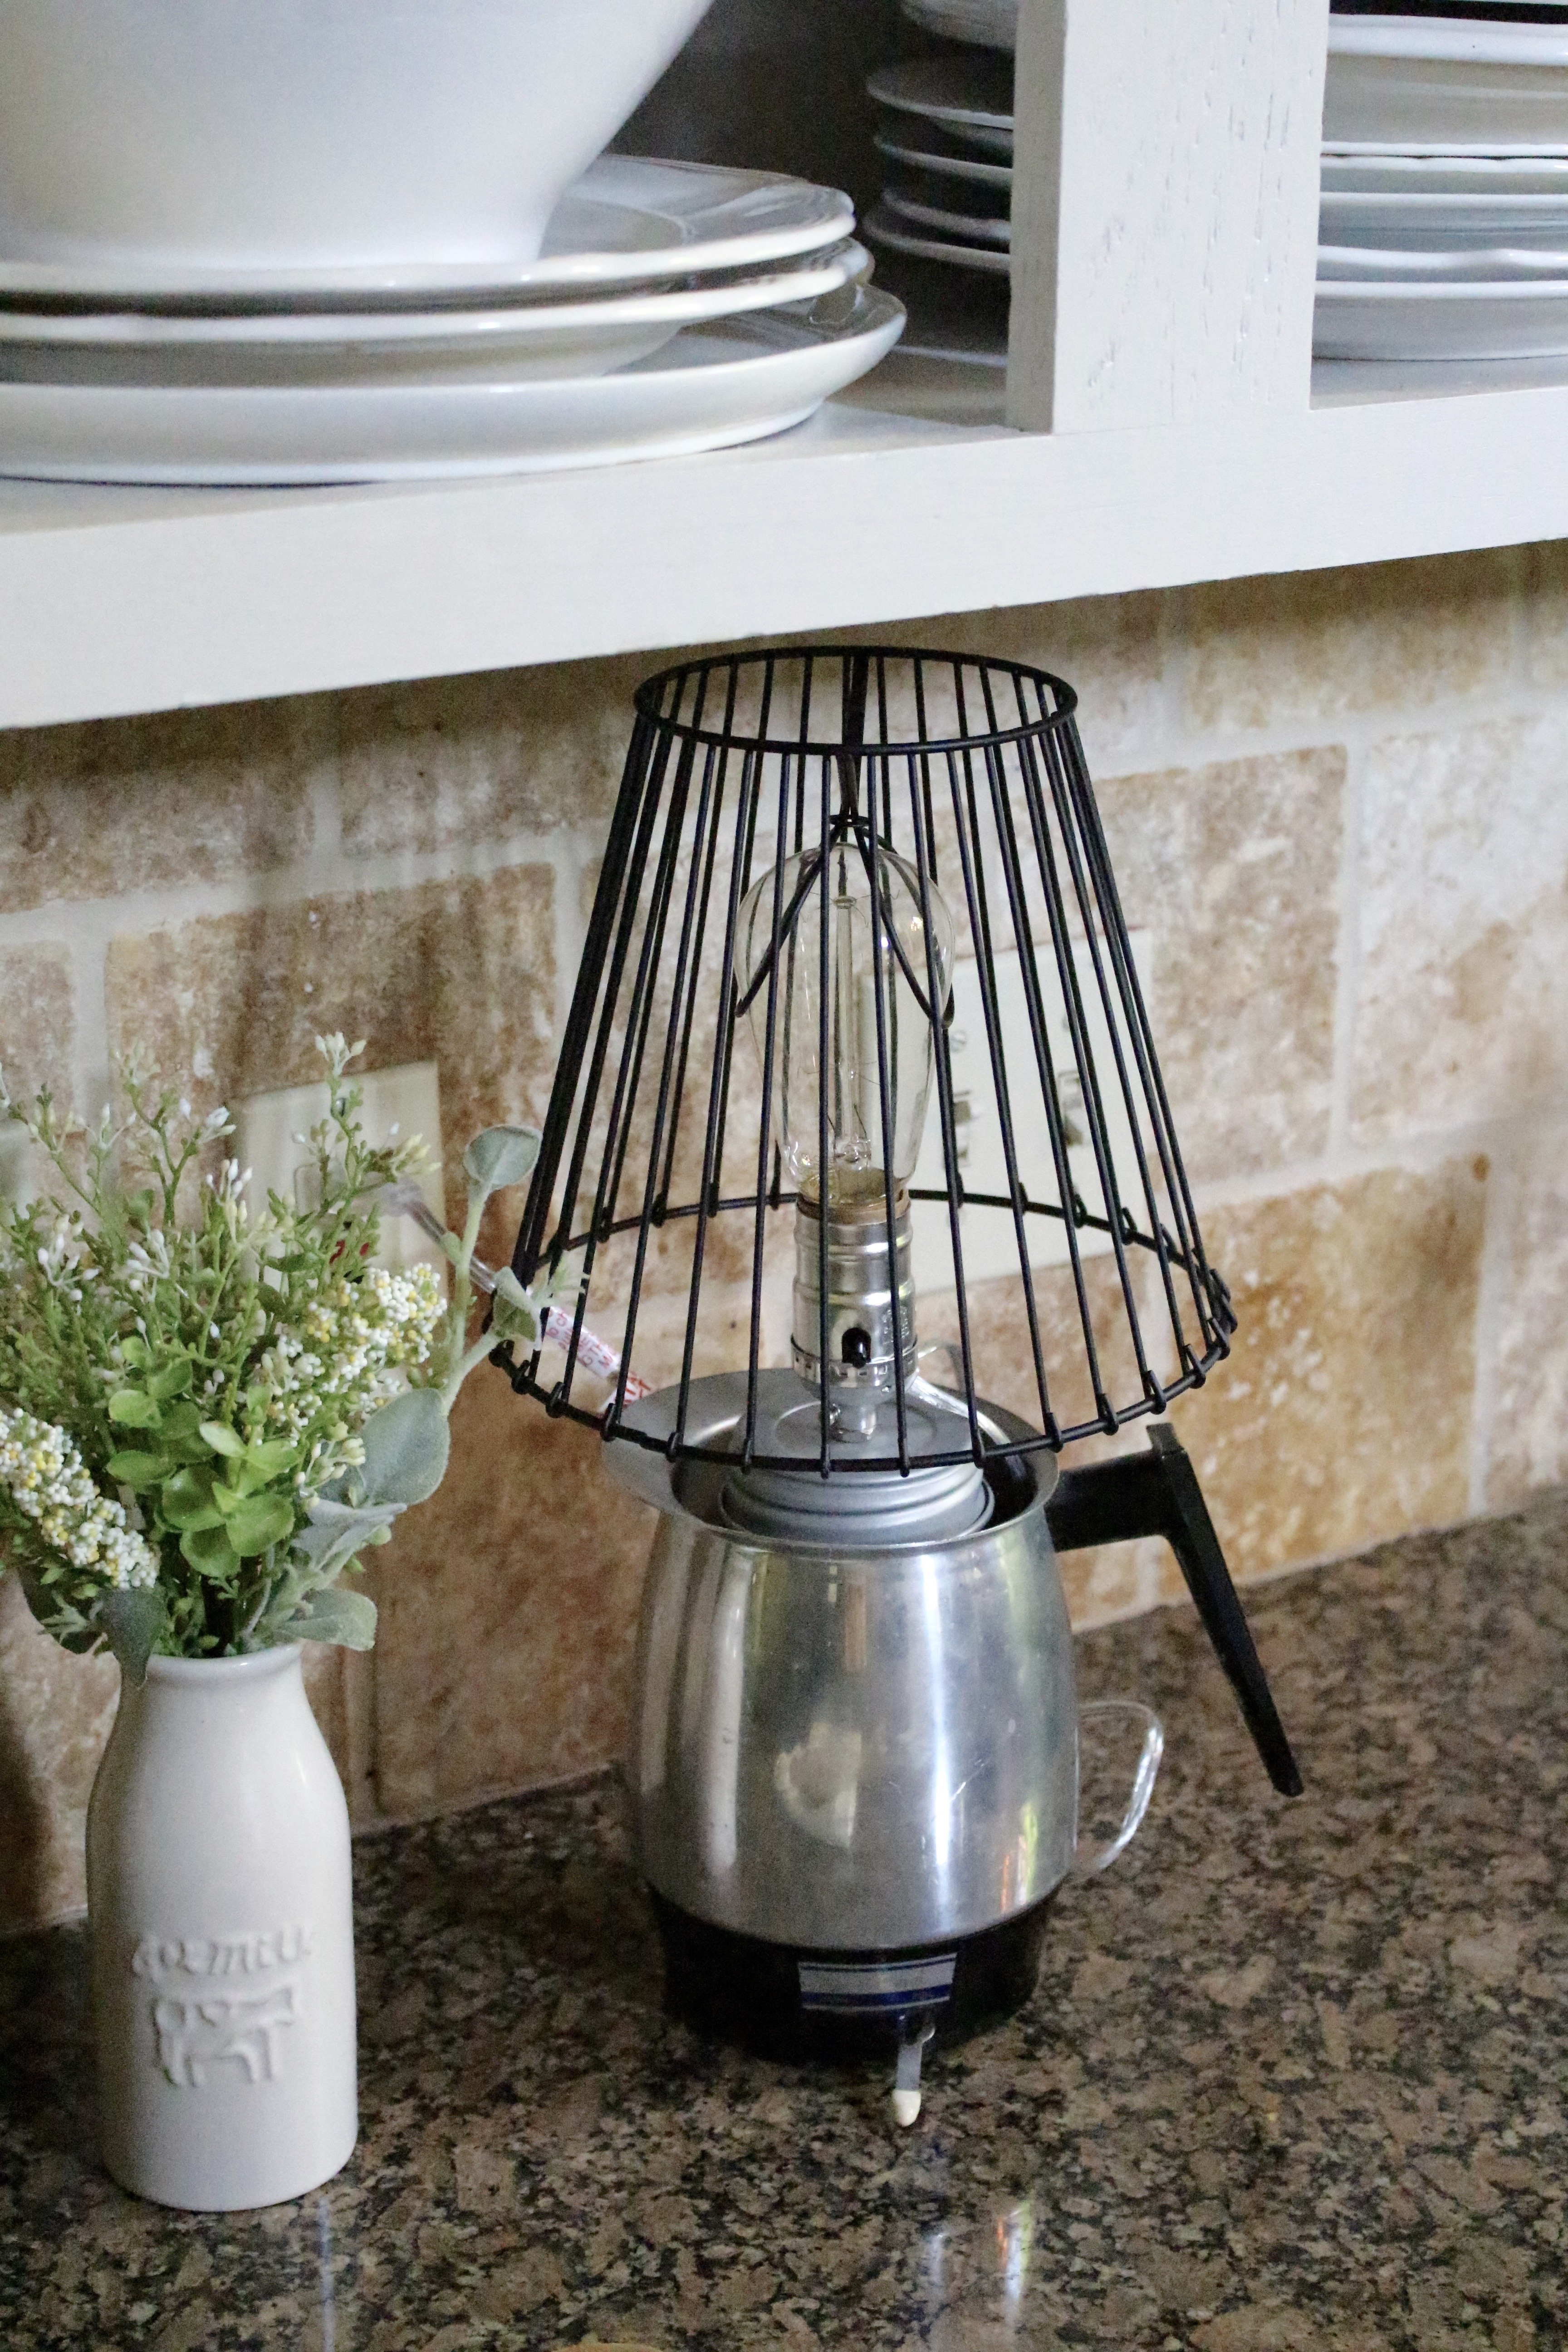 DIY Coffee Pot Lamp for the Monthly Create and Share Challenge by www.mylifefromhome.com